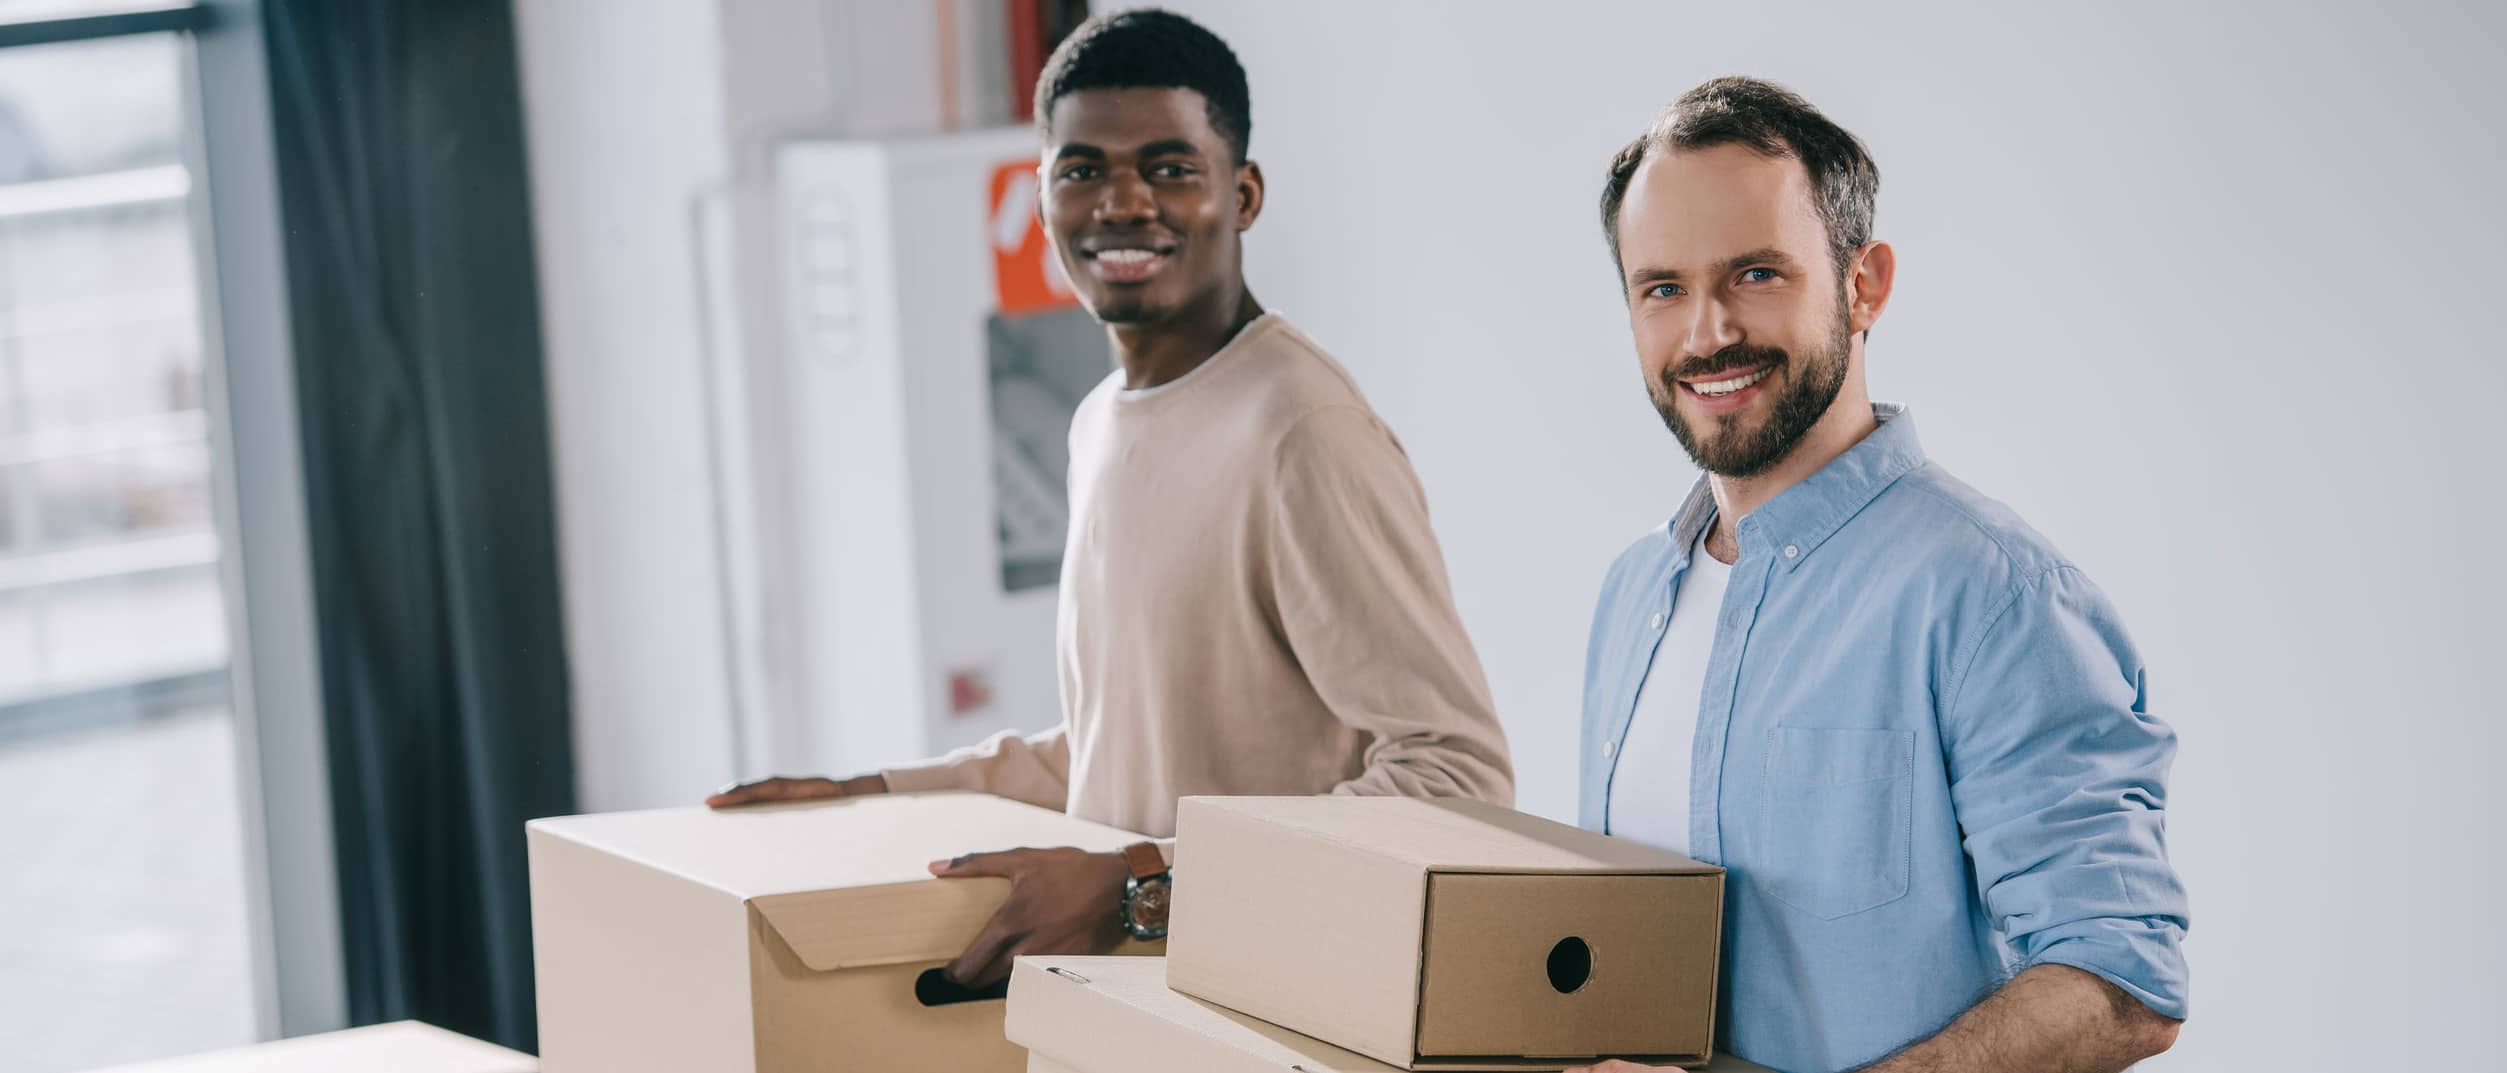 Two men moving boxes out of an office